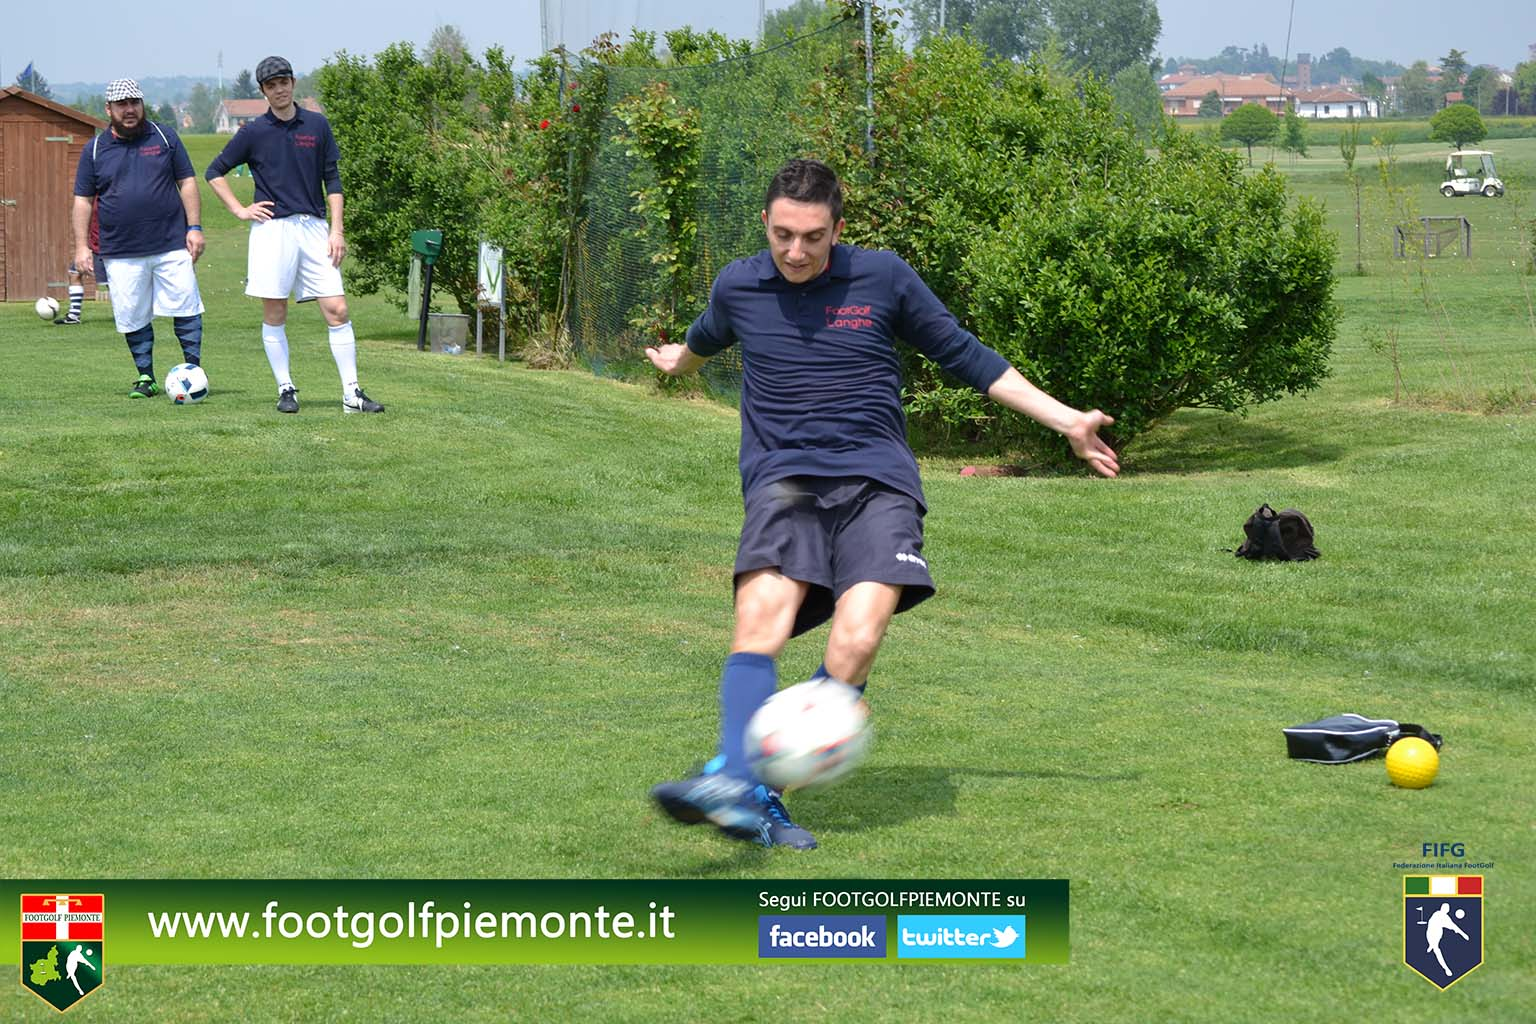 FOTO 9 Regions' Cup Footgolf Piemonte 2016 Golf Città di Asti (At) 30apr16-72